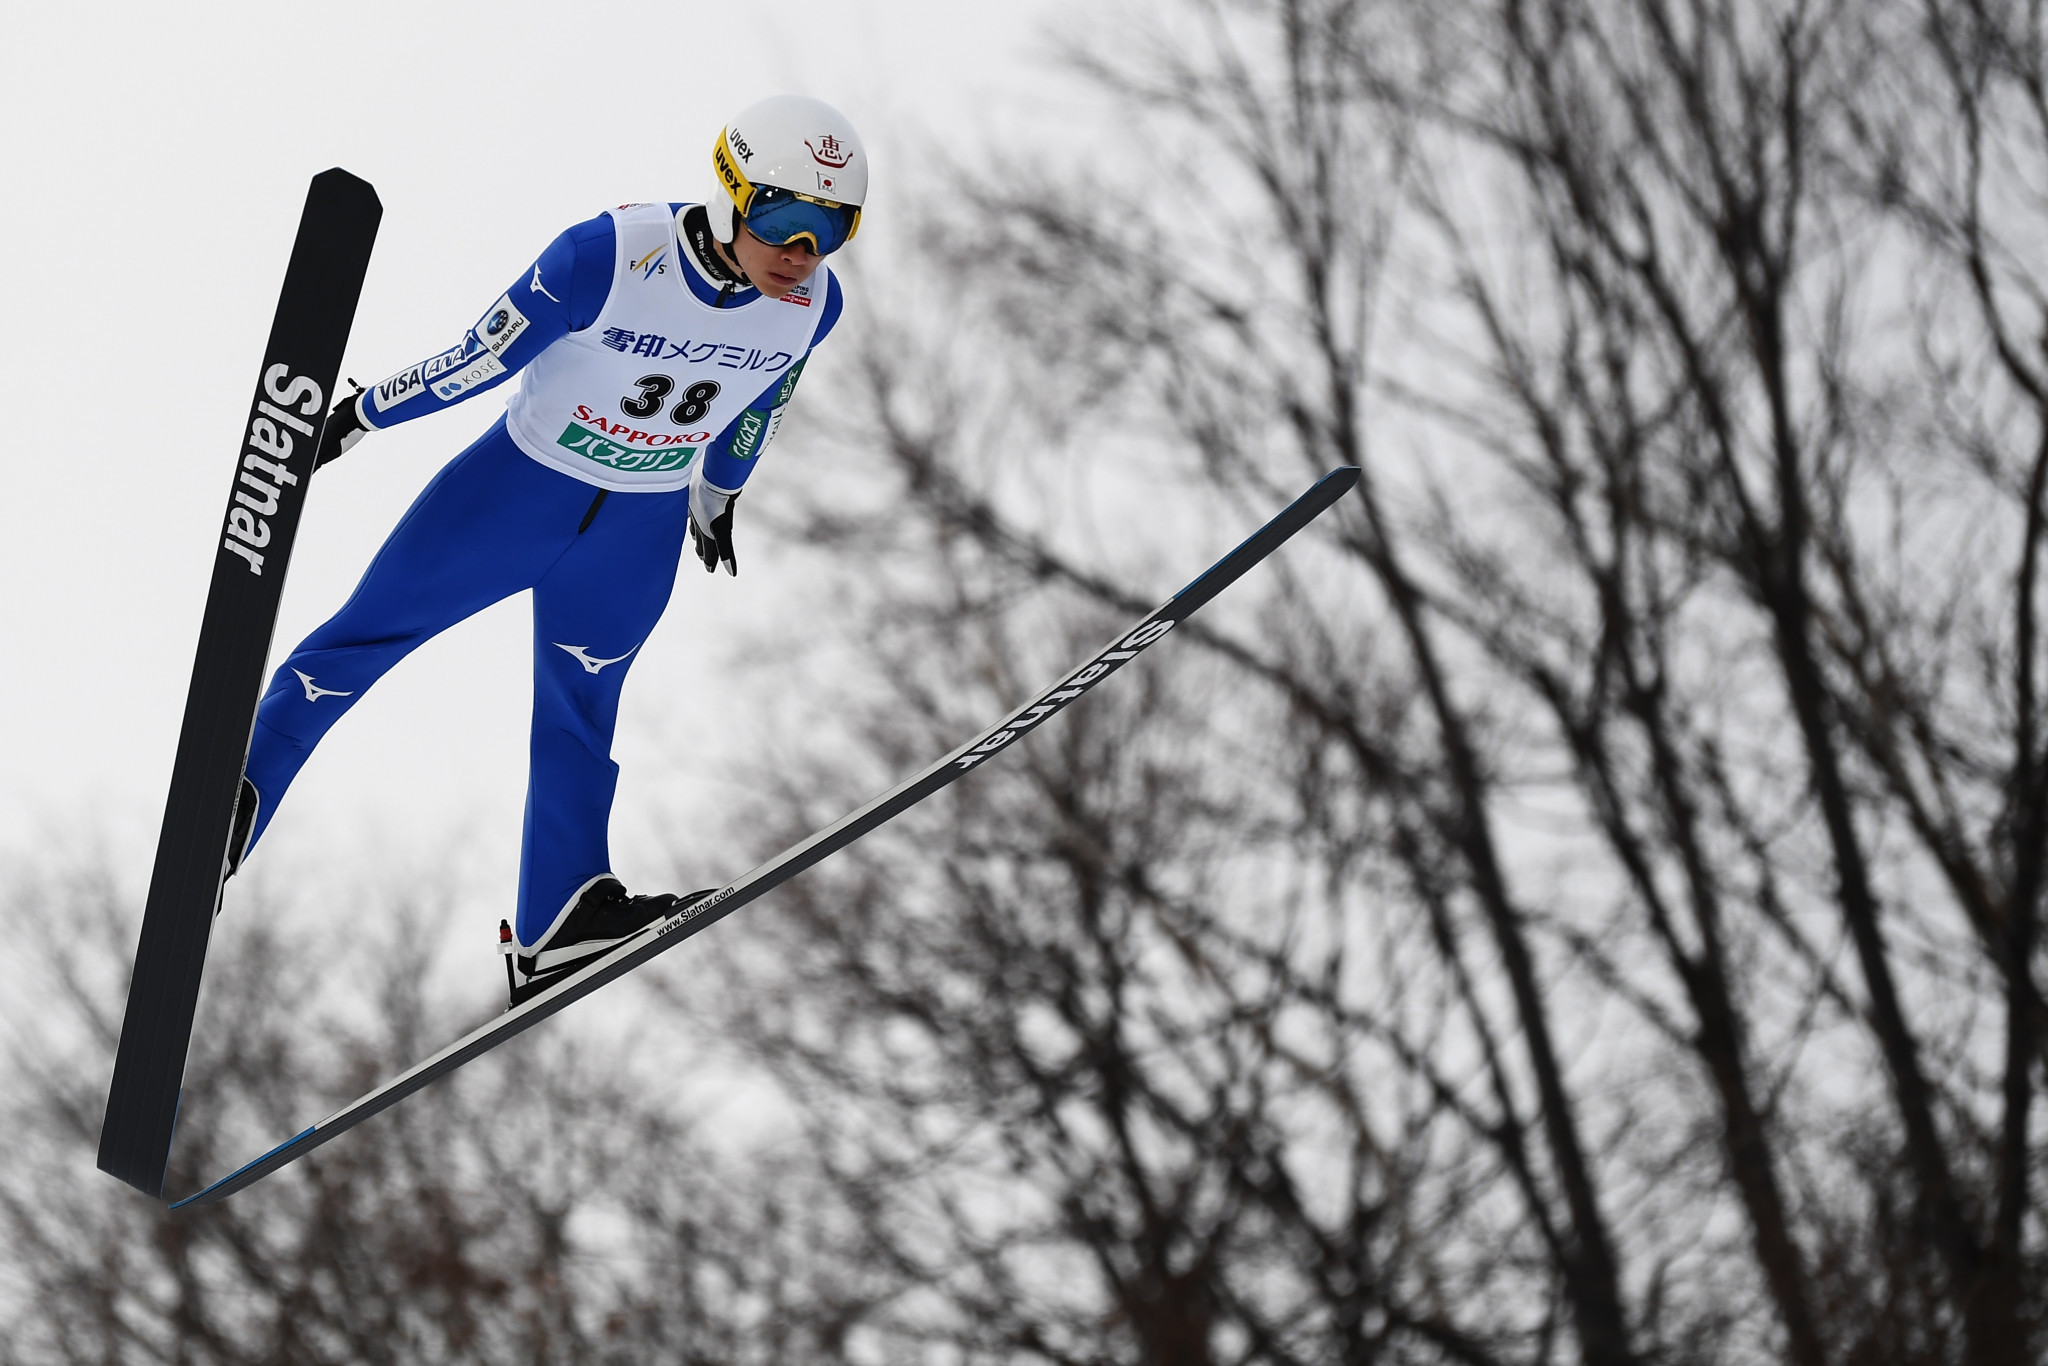 Yukiya Sato picks up FIS Ski Jumping World Cup win as Stefan Kraft seizes overall lead